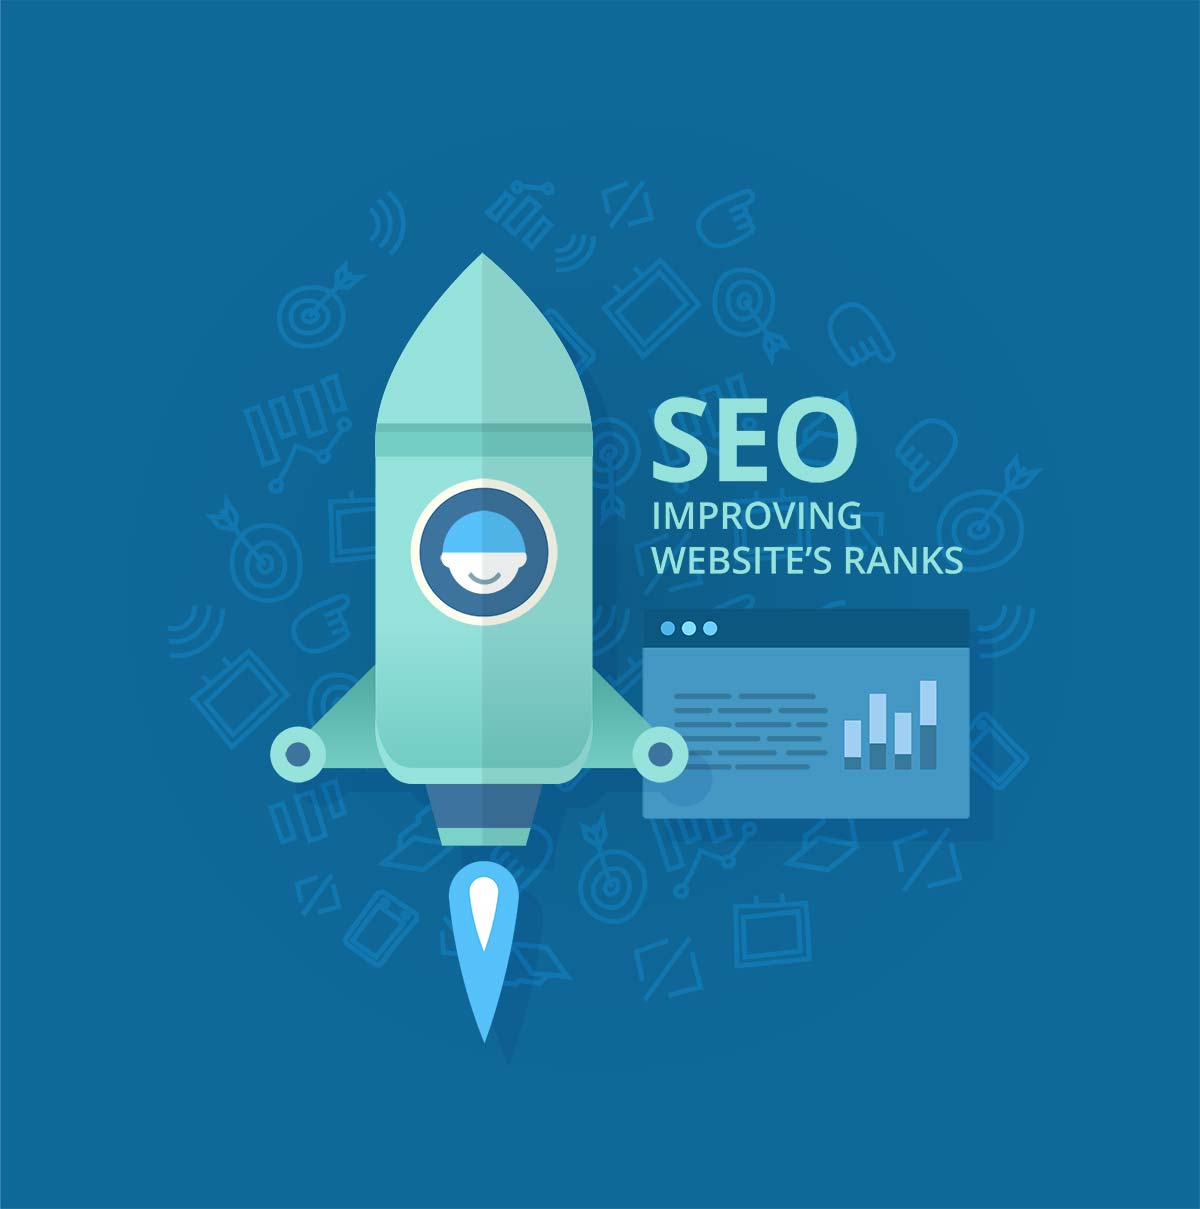 Top 10 Reasons to invest in SEO in 2019